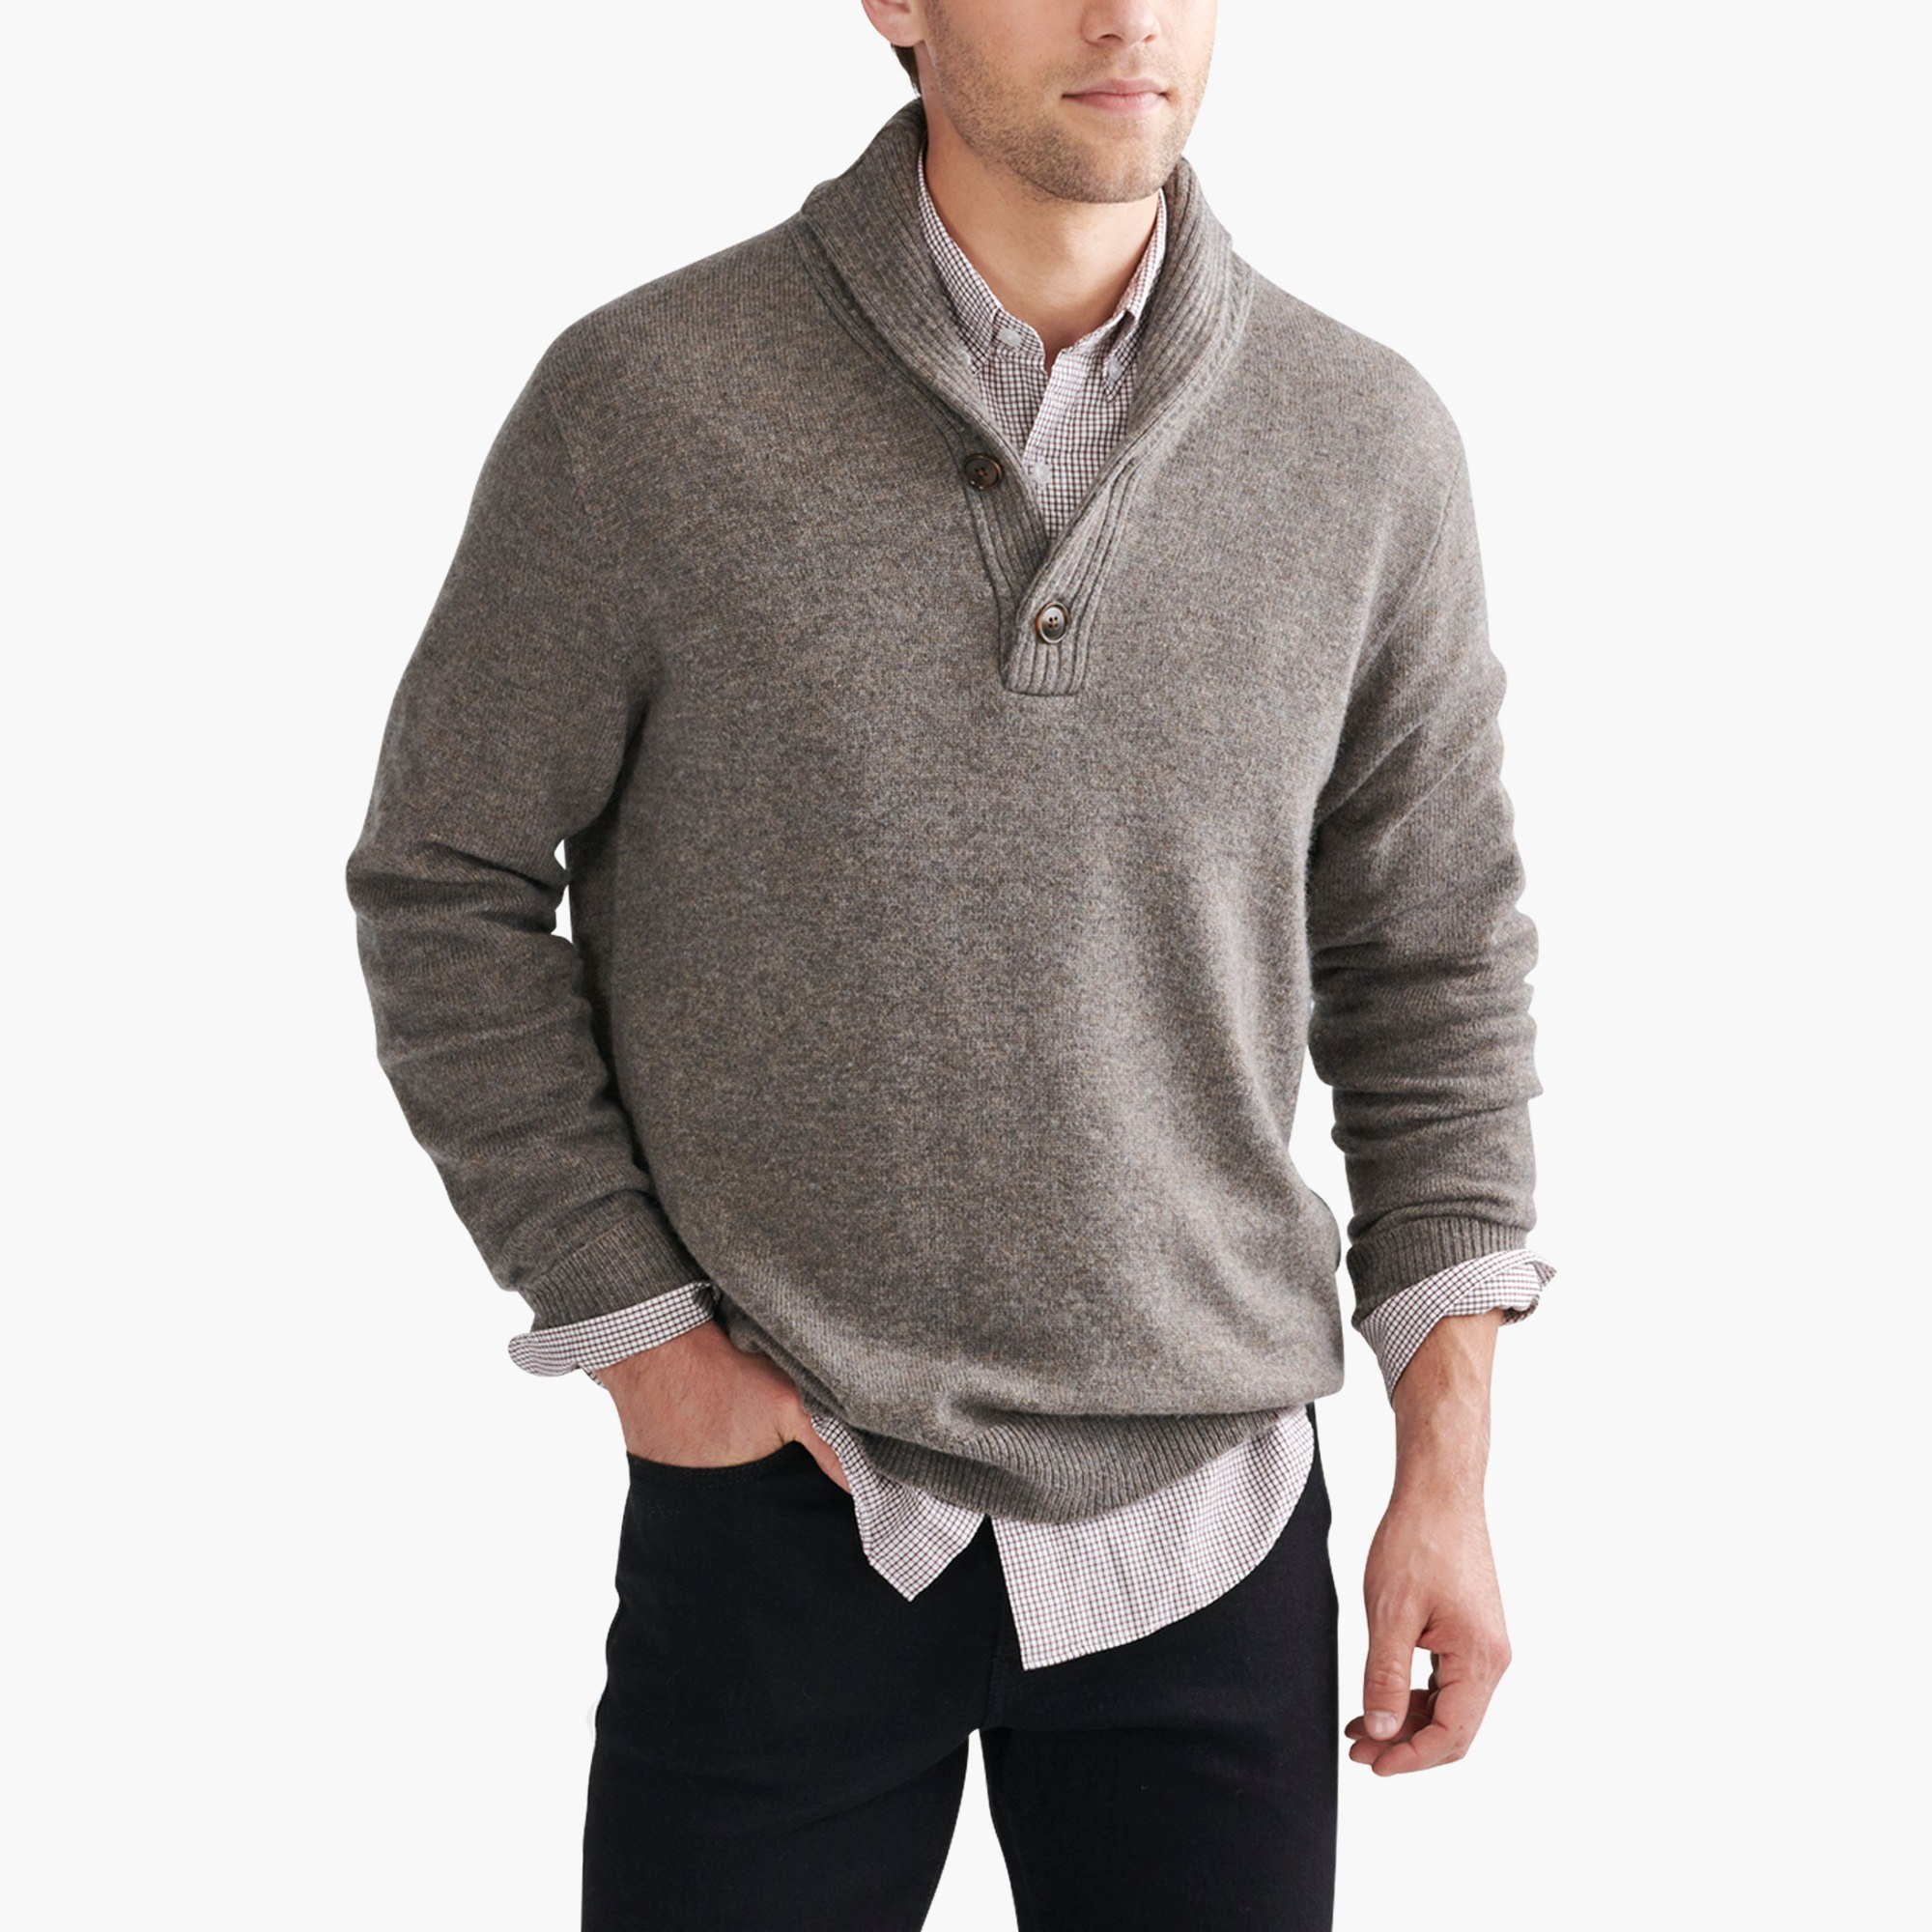 Shawl Collar Sweaters